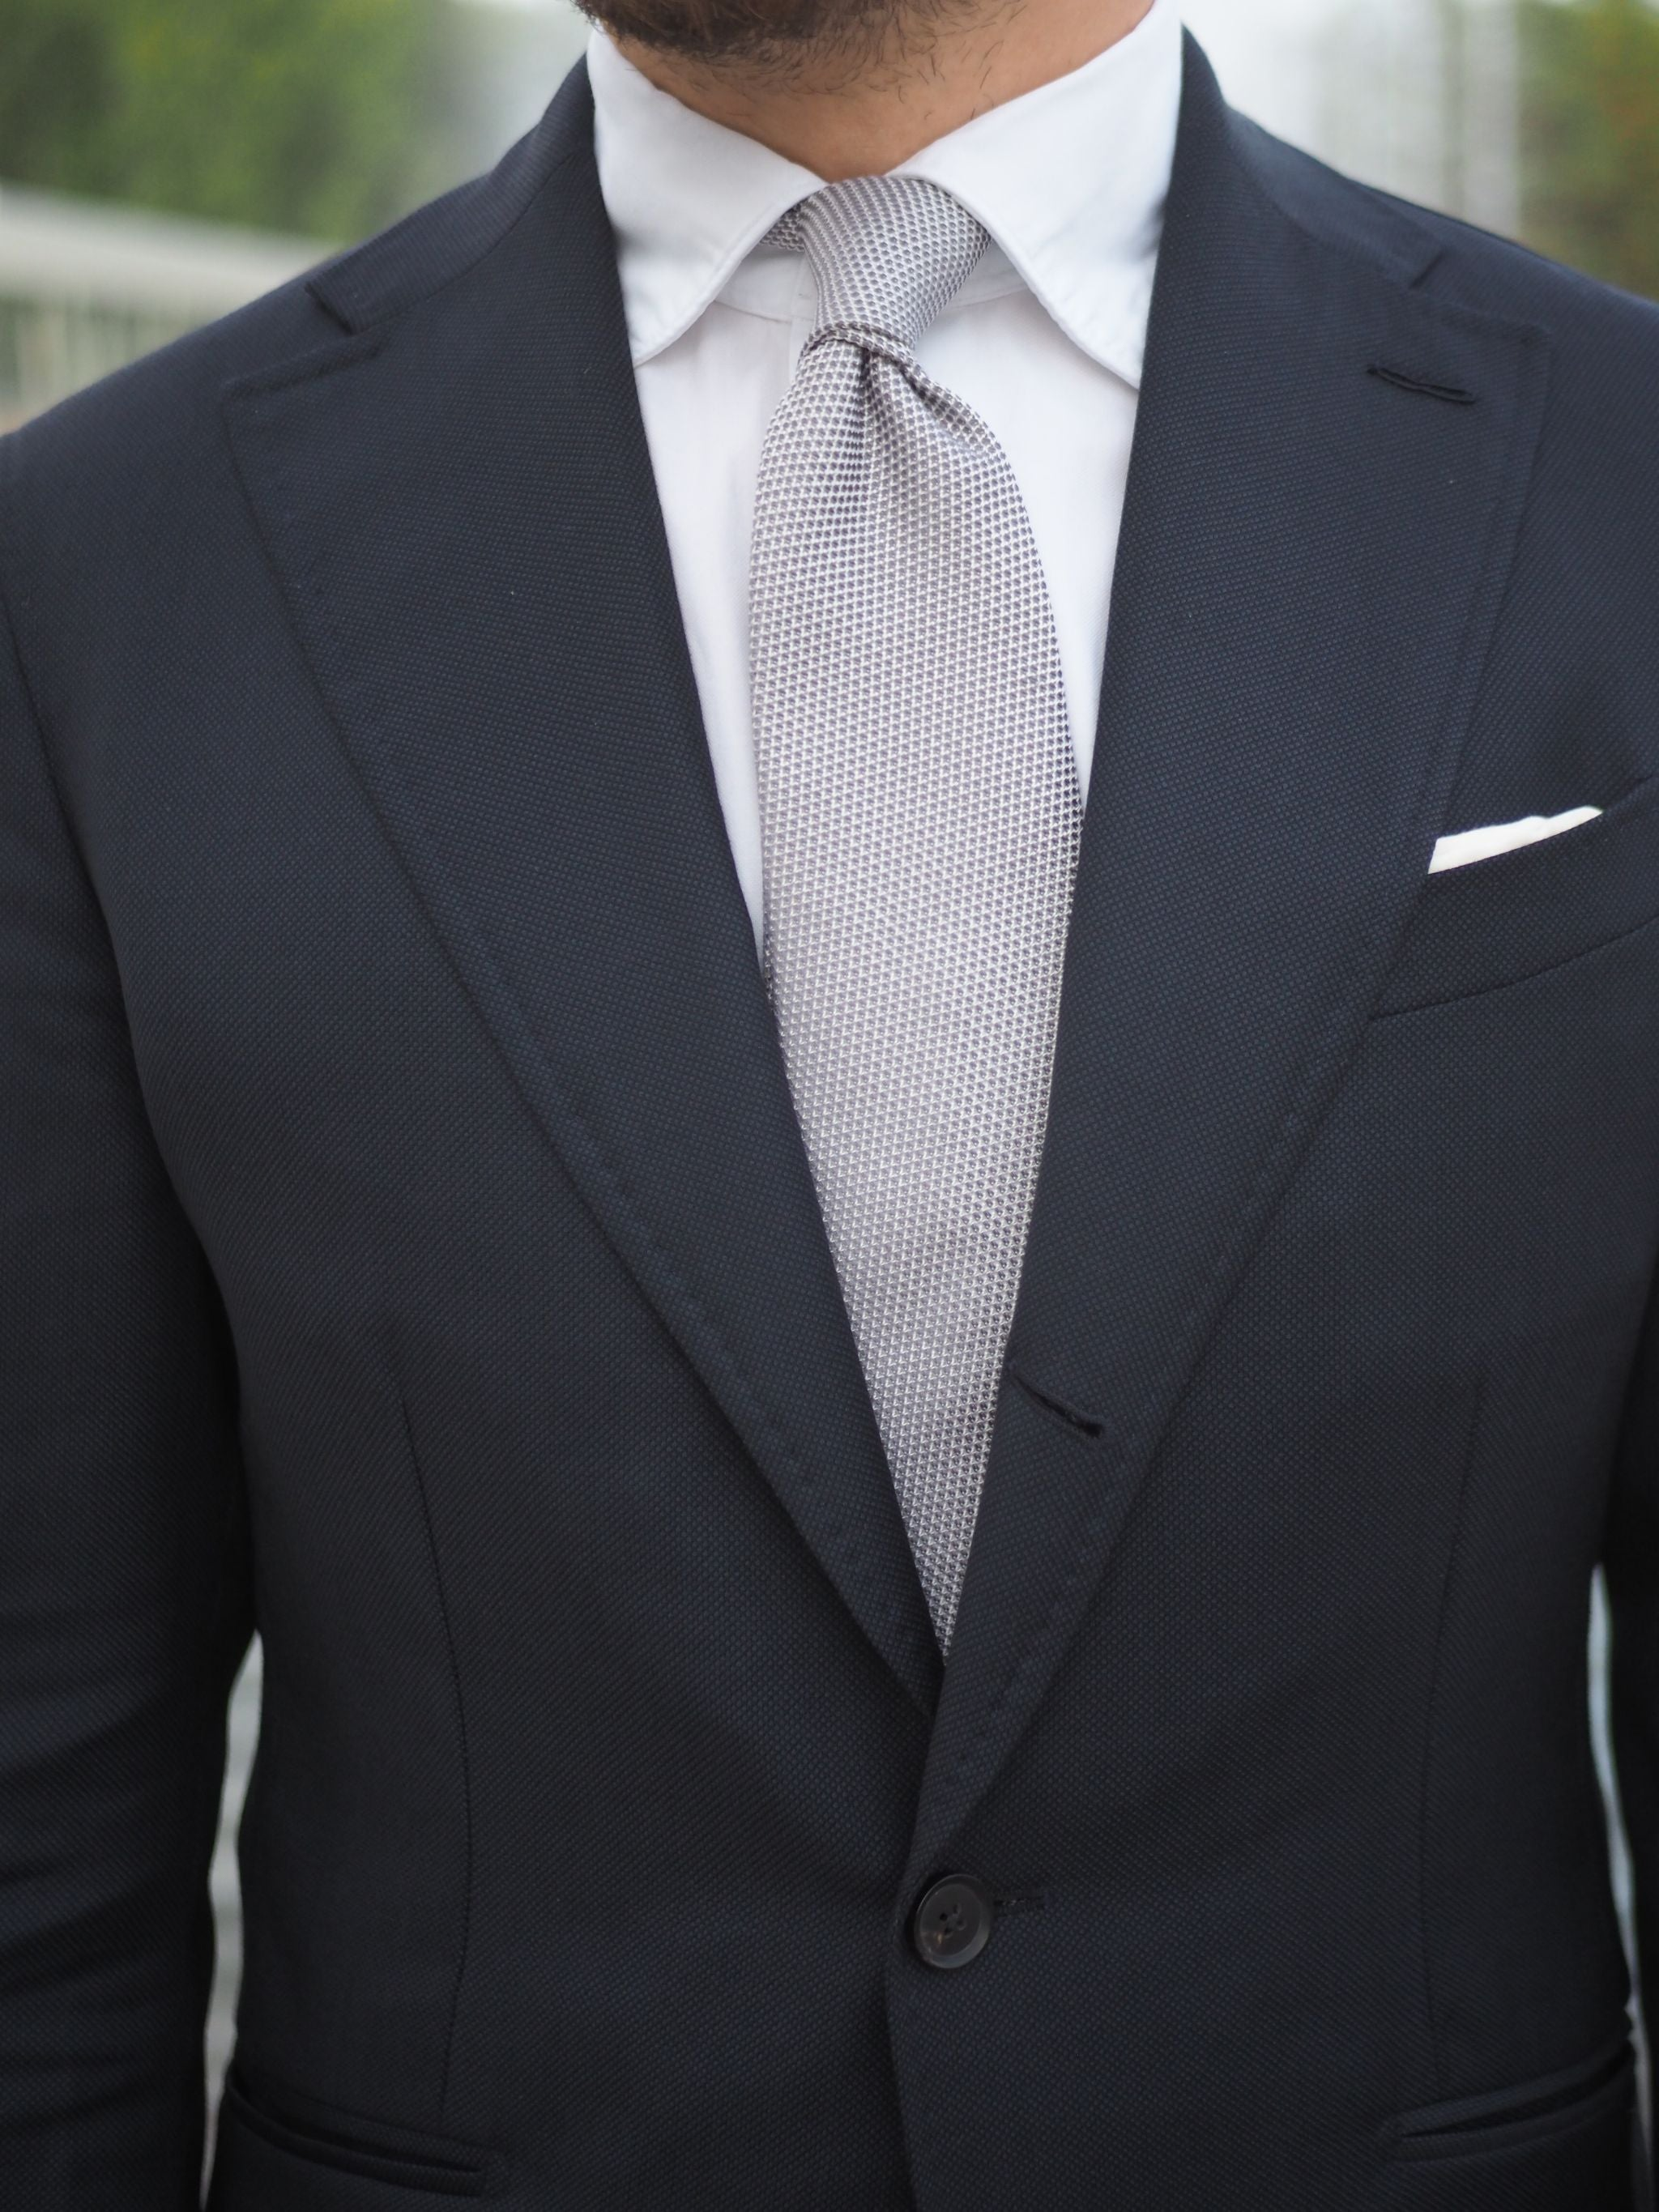 What to wear for wedding party - always go with a white shirt.